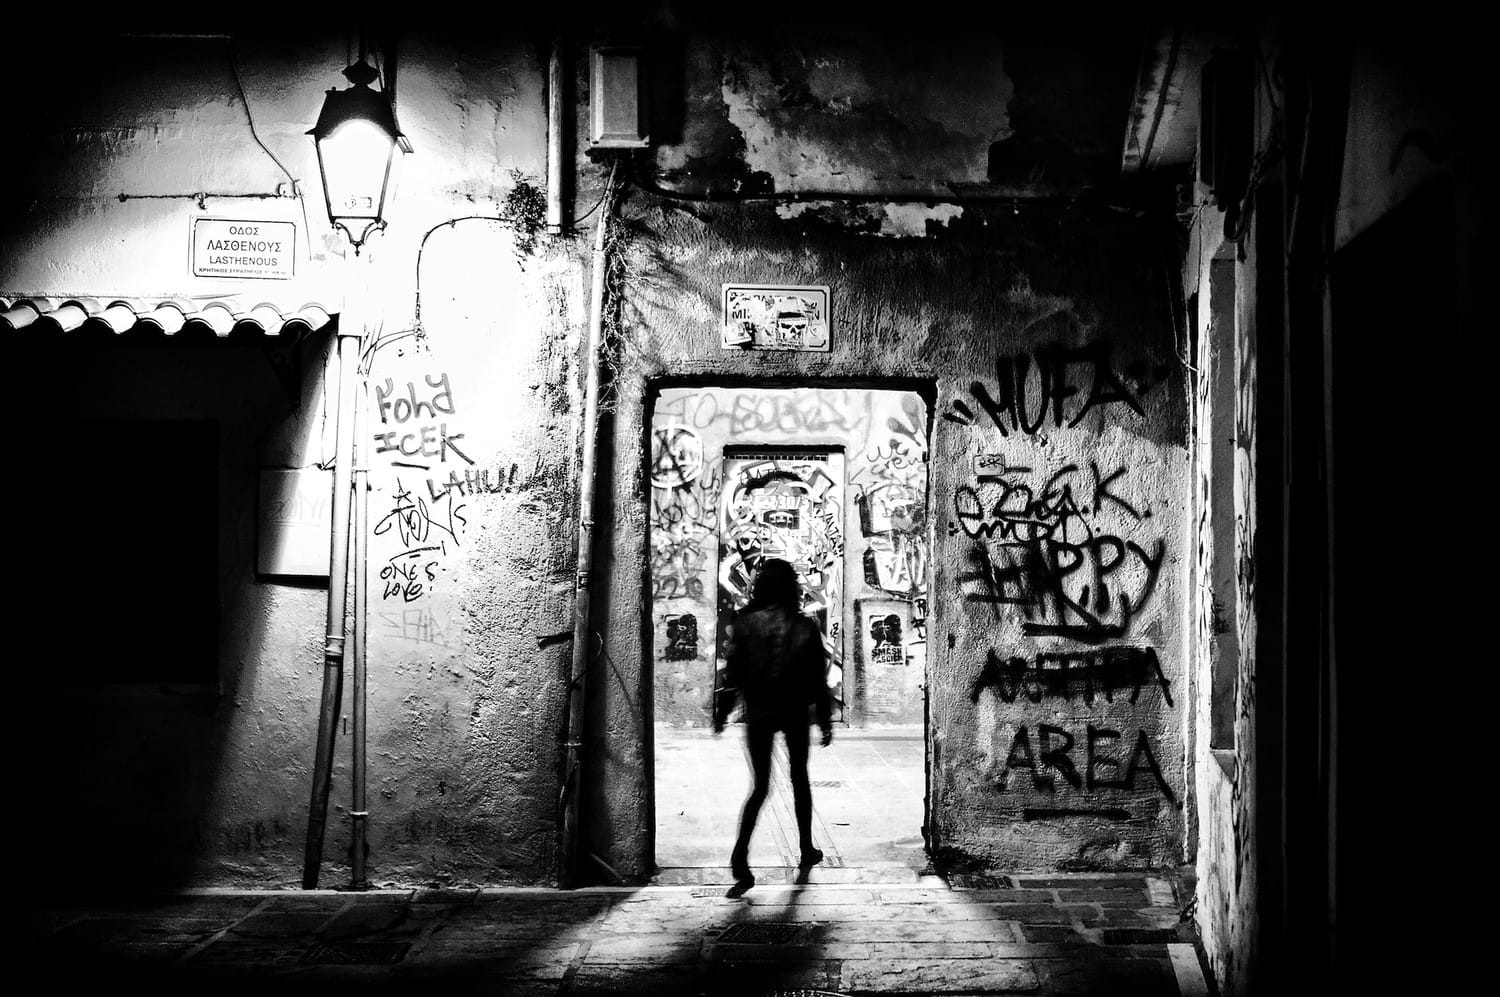 night-walk-in-the-decaying-alleys-bw